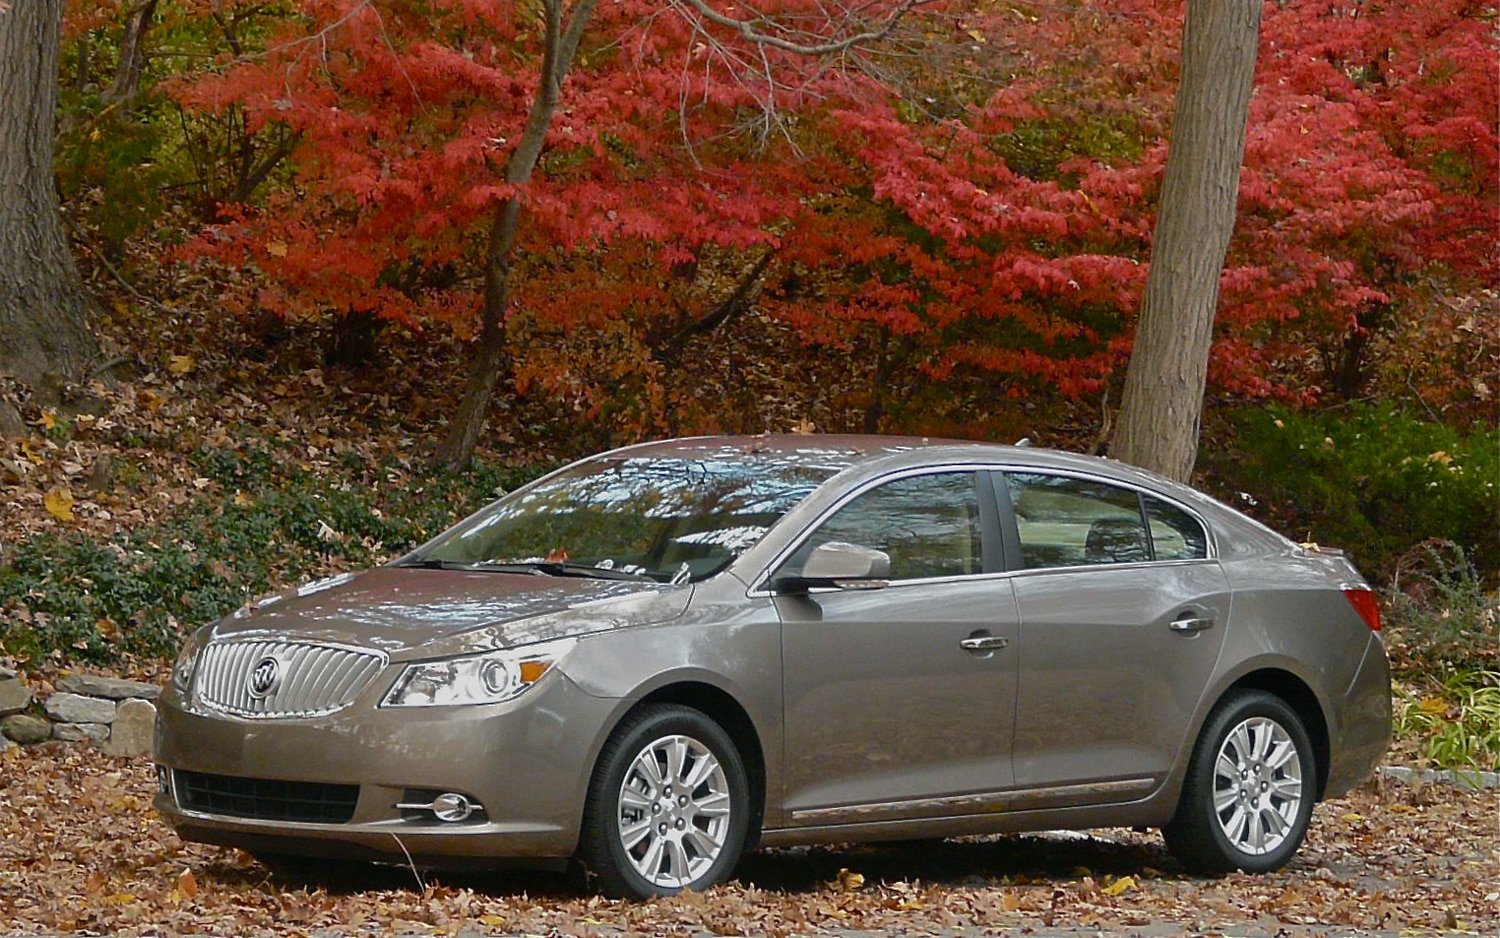 2012 Buick LaCrosse EAssist Front Left Side View2